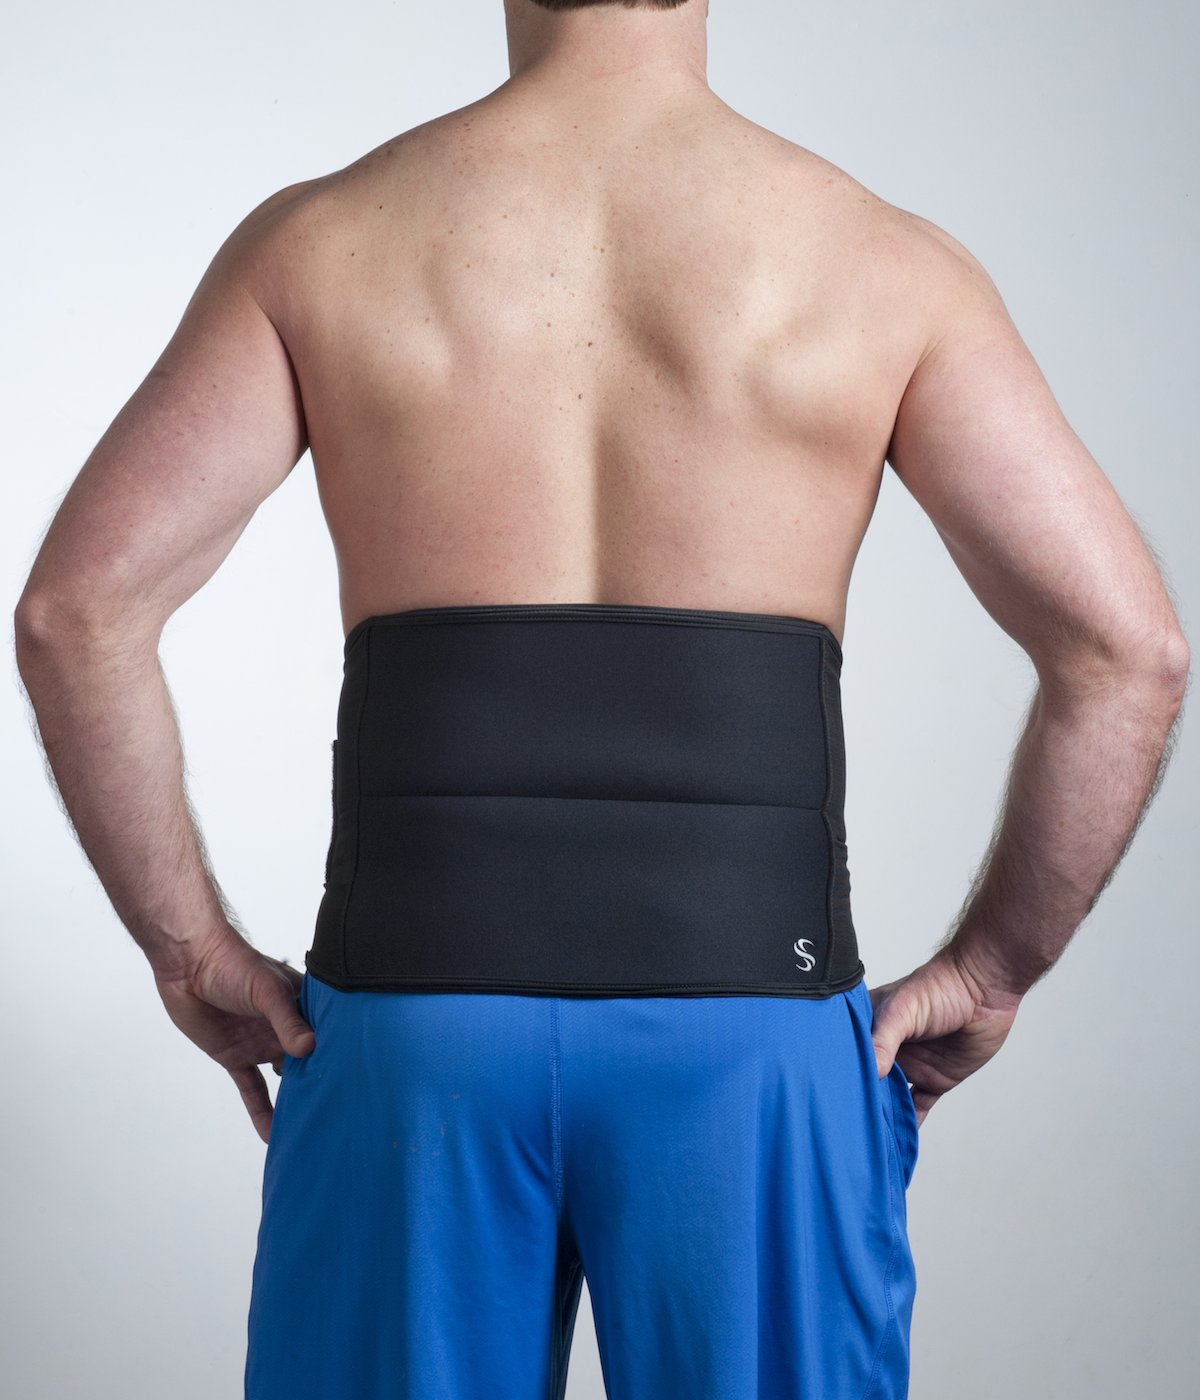 Spand-Ice   Hot + Cold The Recovery Wrap   Back